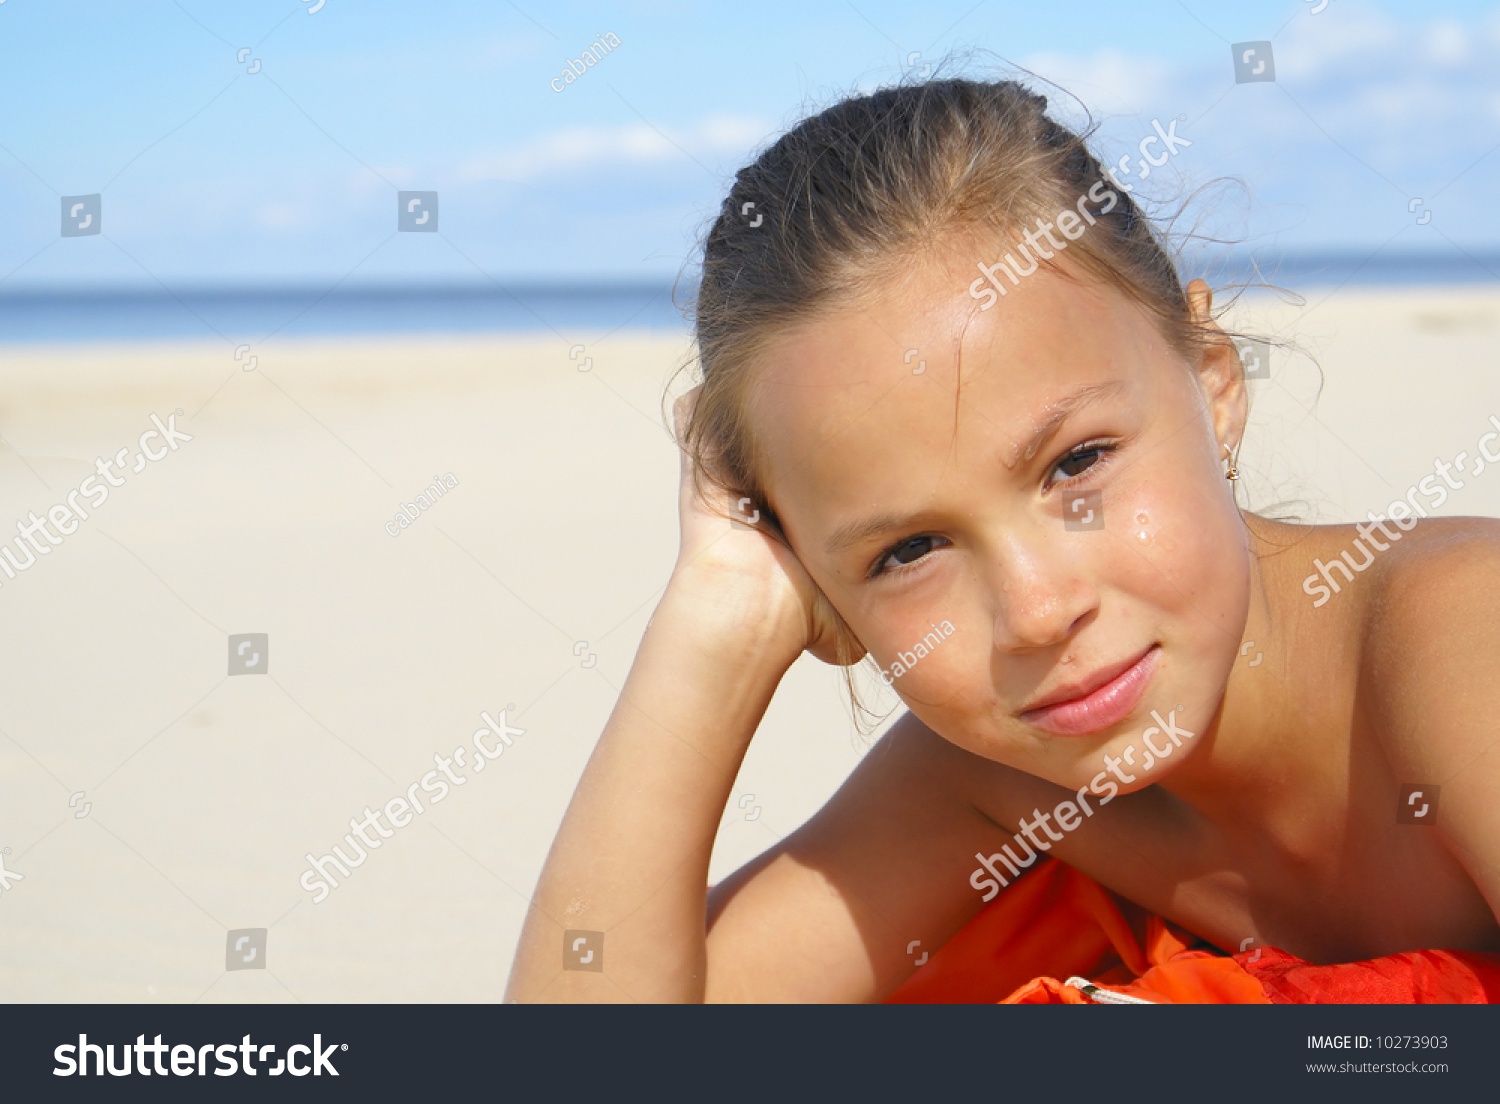 Cute Girl at Beach stock photo. Image of innocent, happy